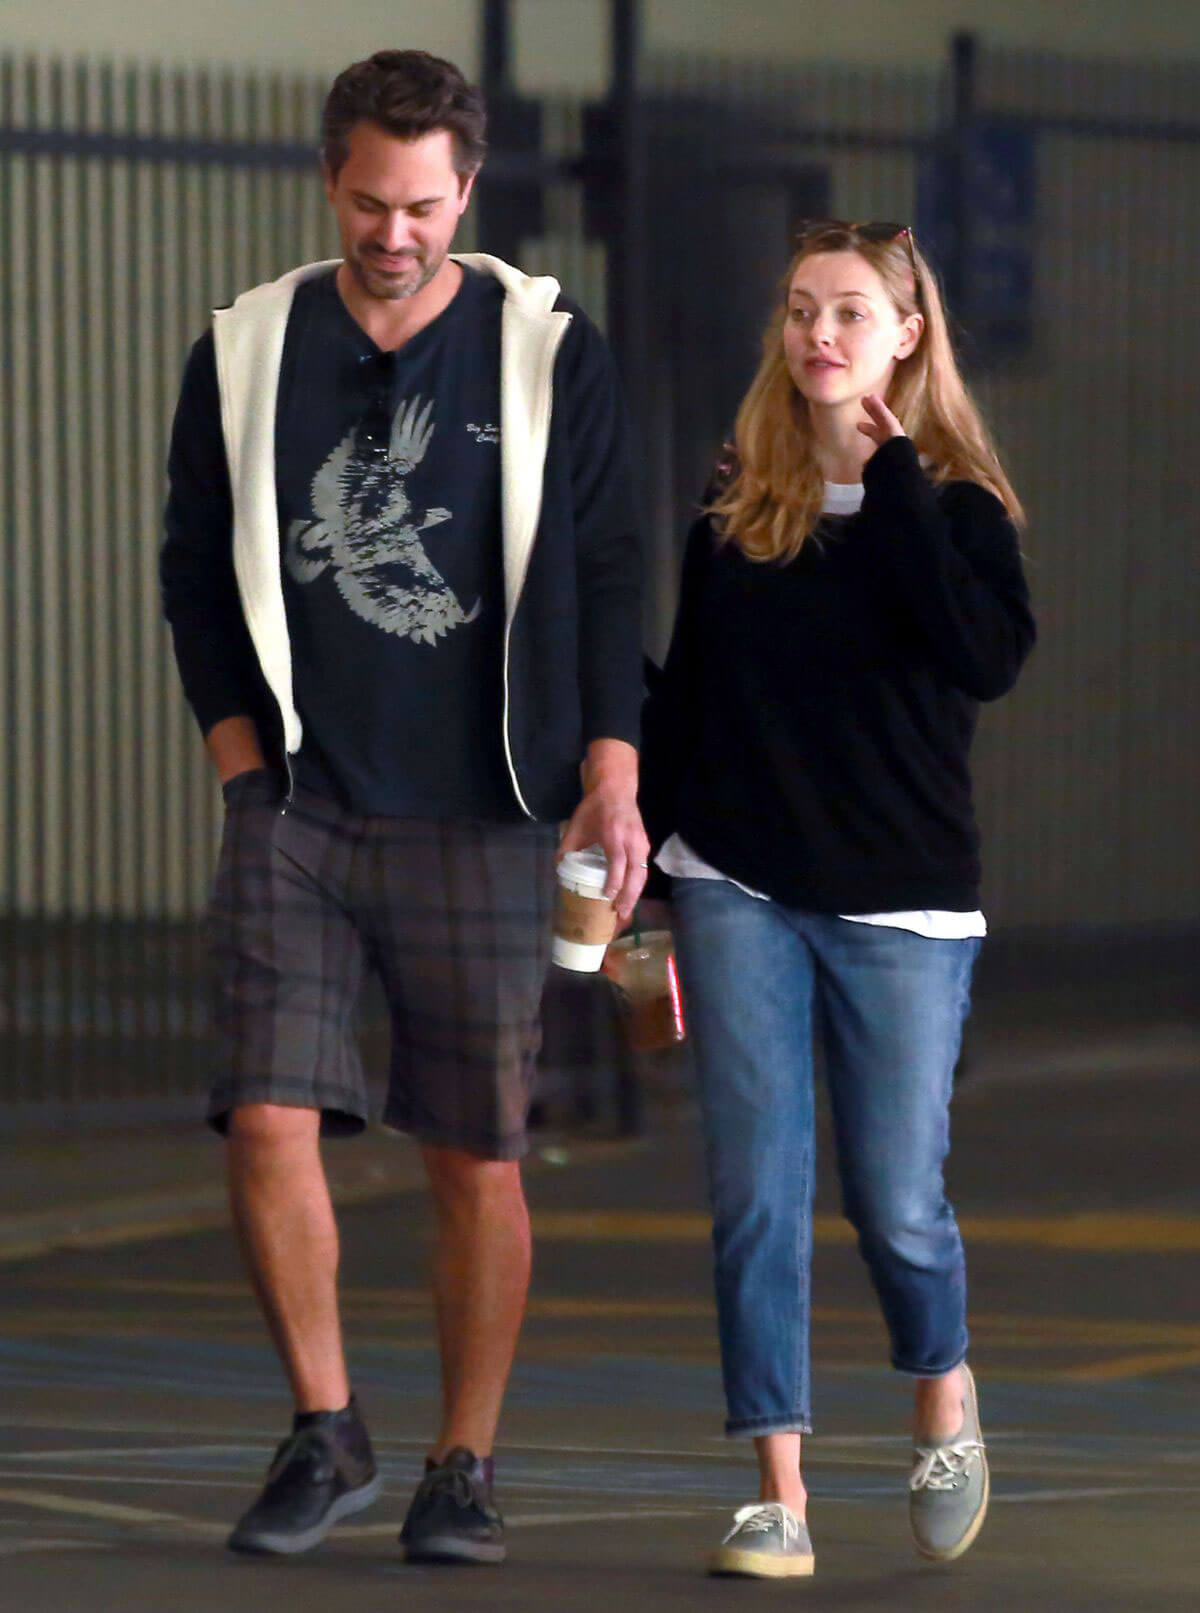 Amanda Seyfried and Thomas Sadoski at a Starbucks in Los Angeles